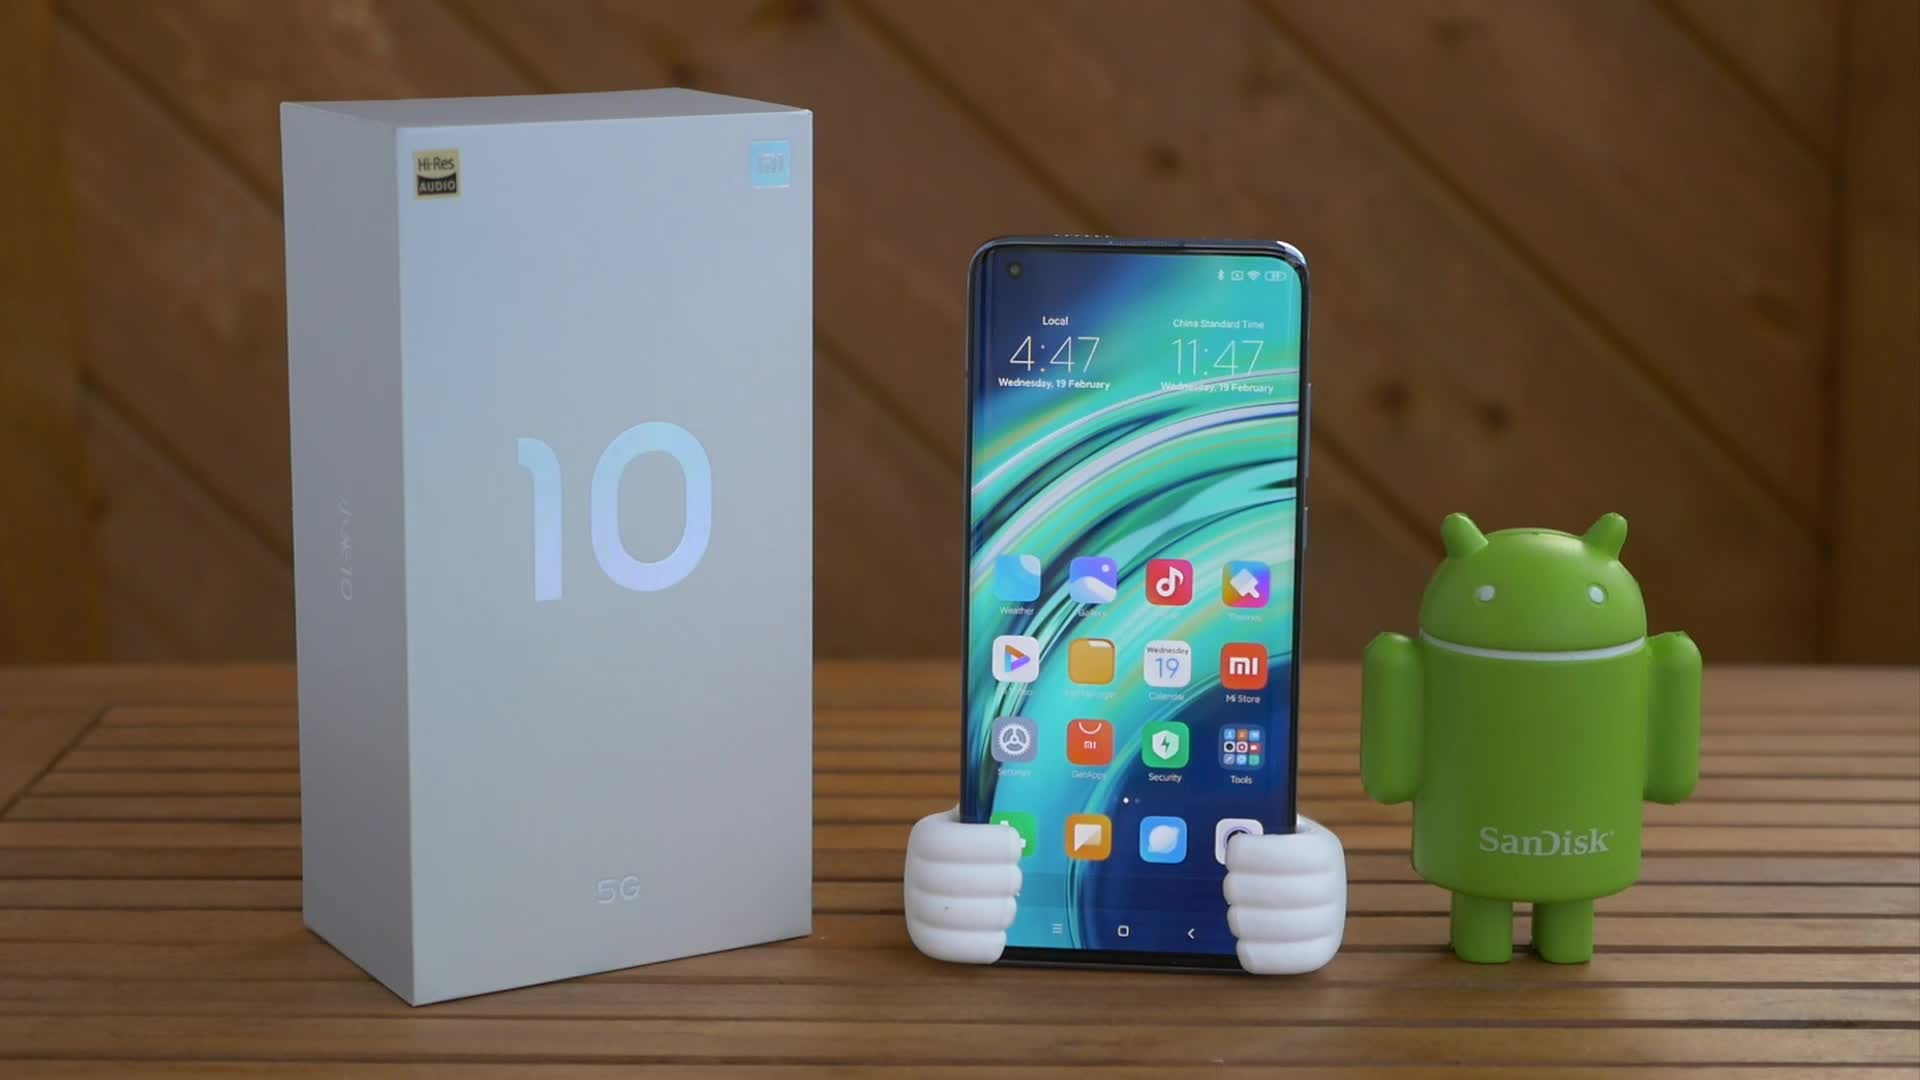 Smartphone, Android, China, Test, Xiaomi, Timm Mohn, Mi 10